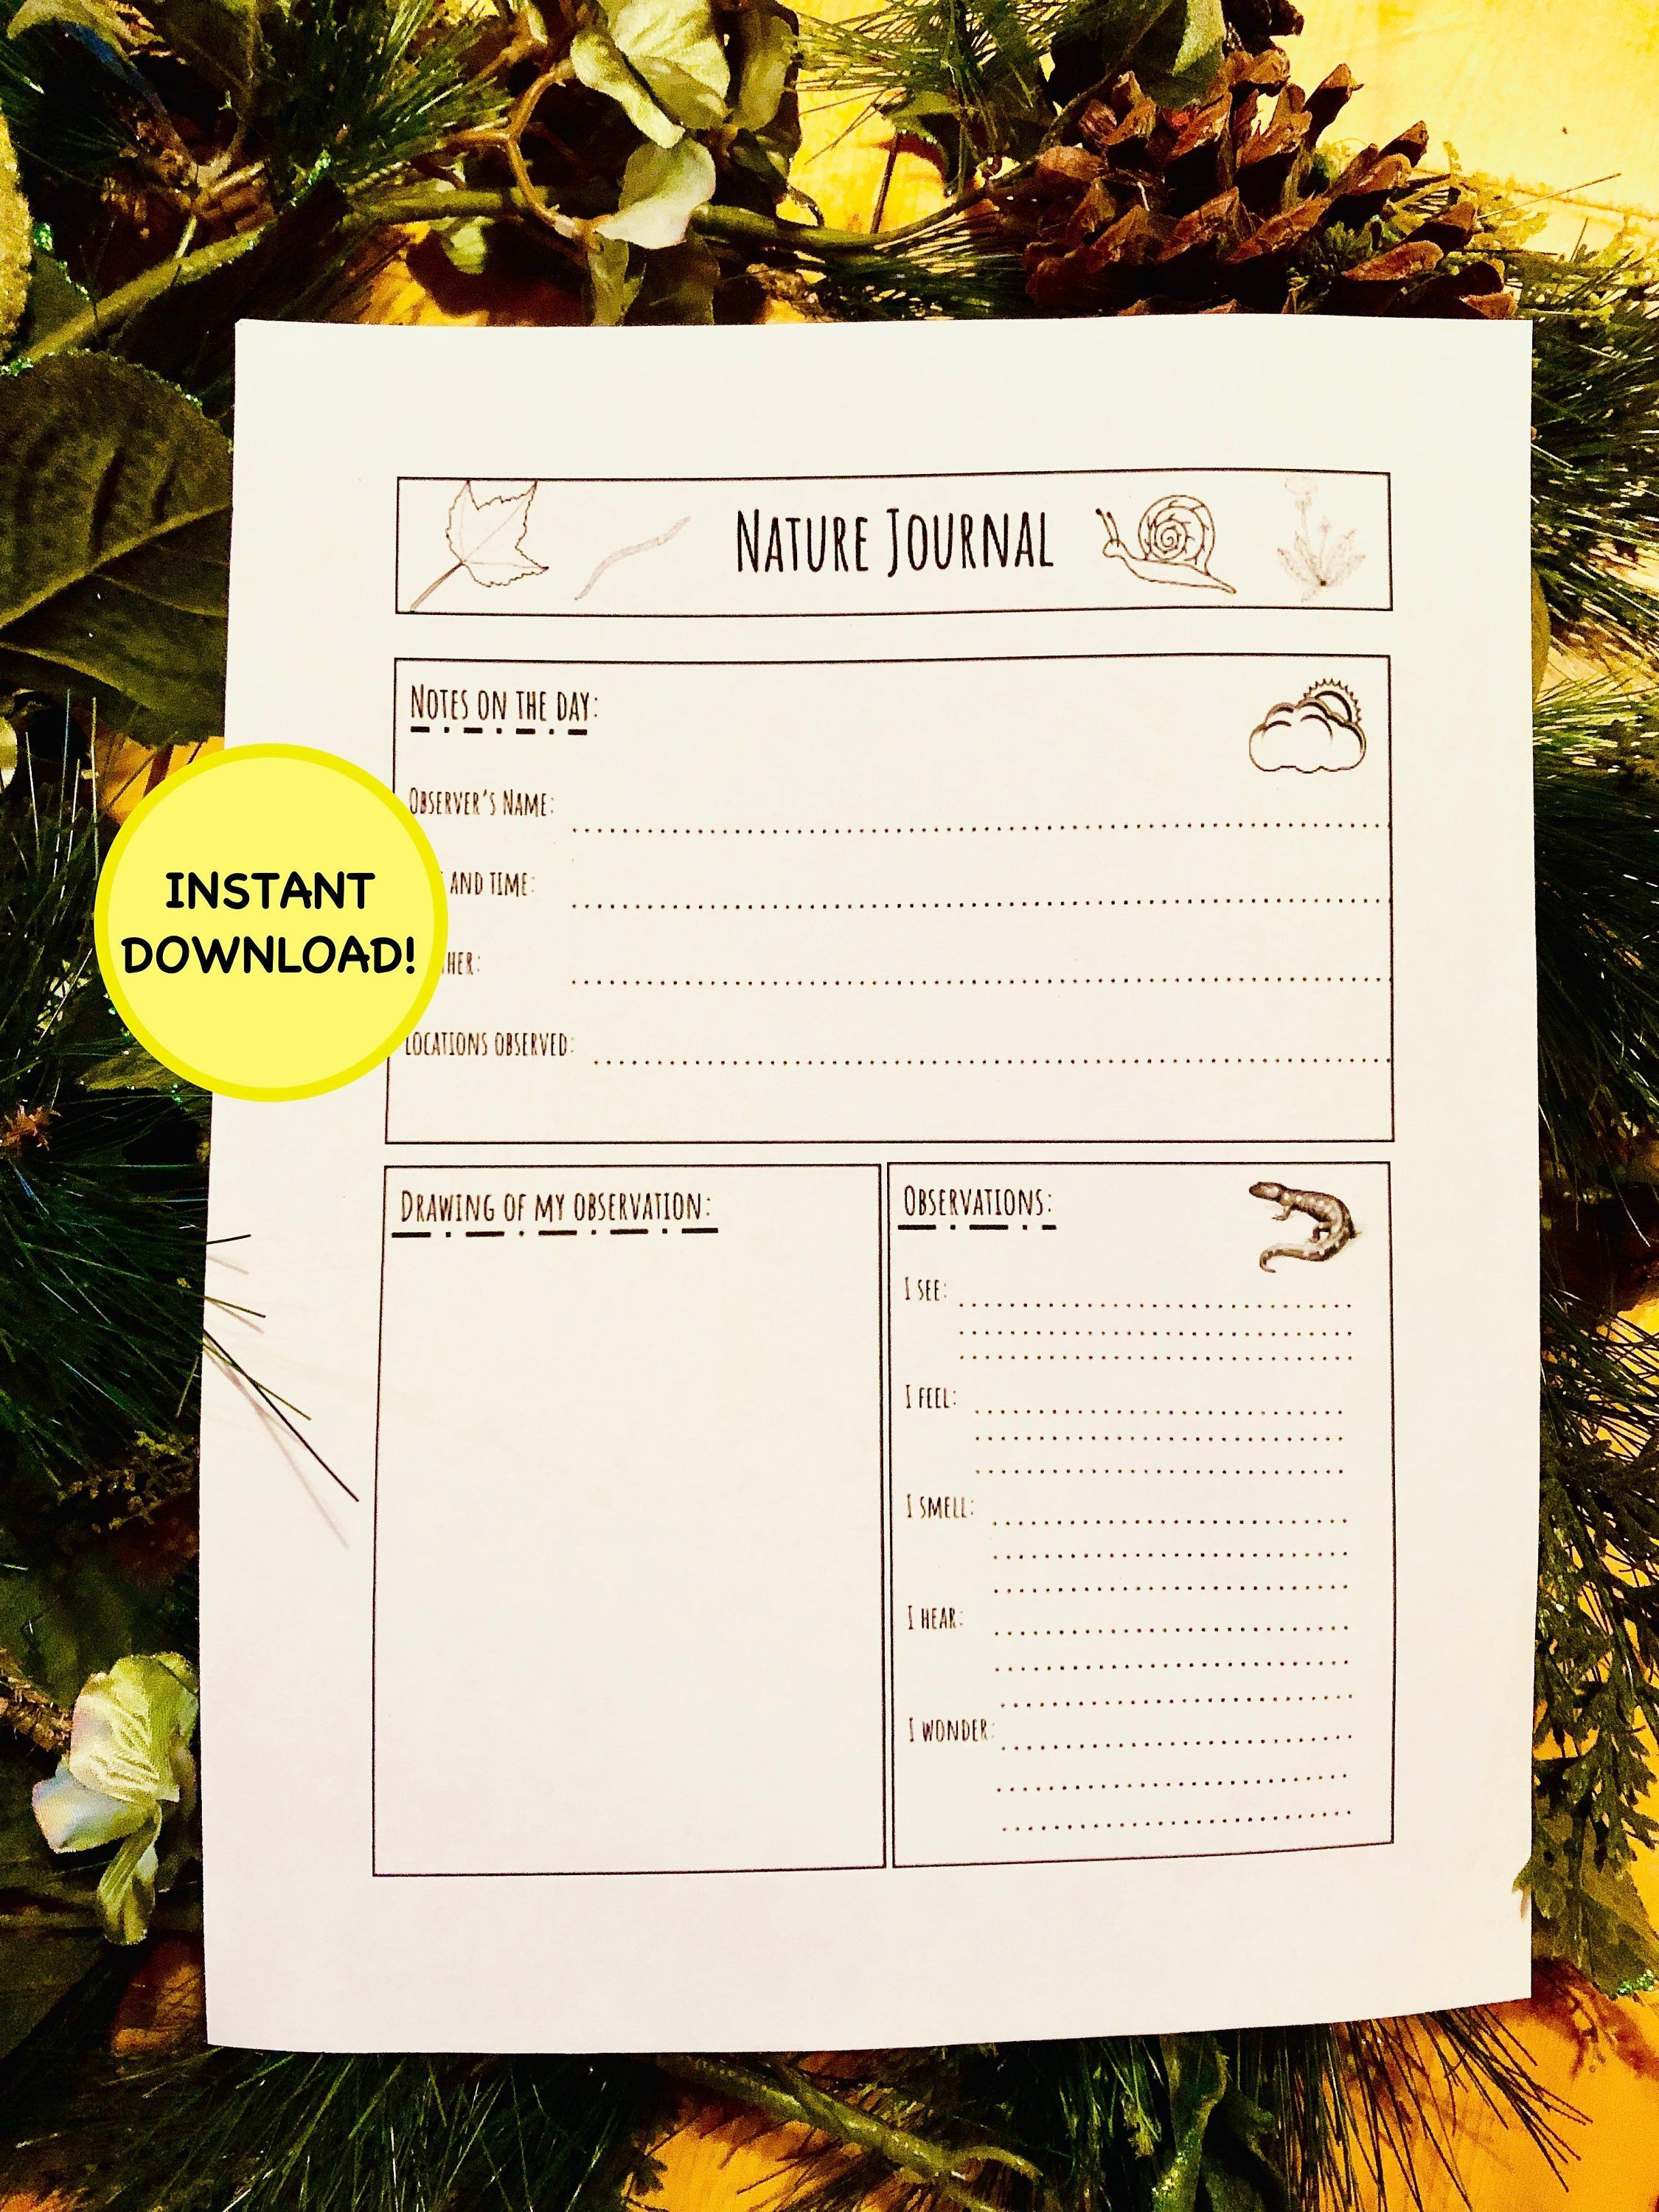 Nature Journal Worksheet For Kids Printable Instant